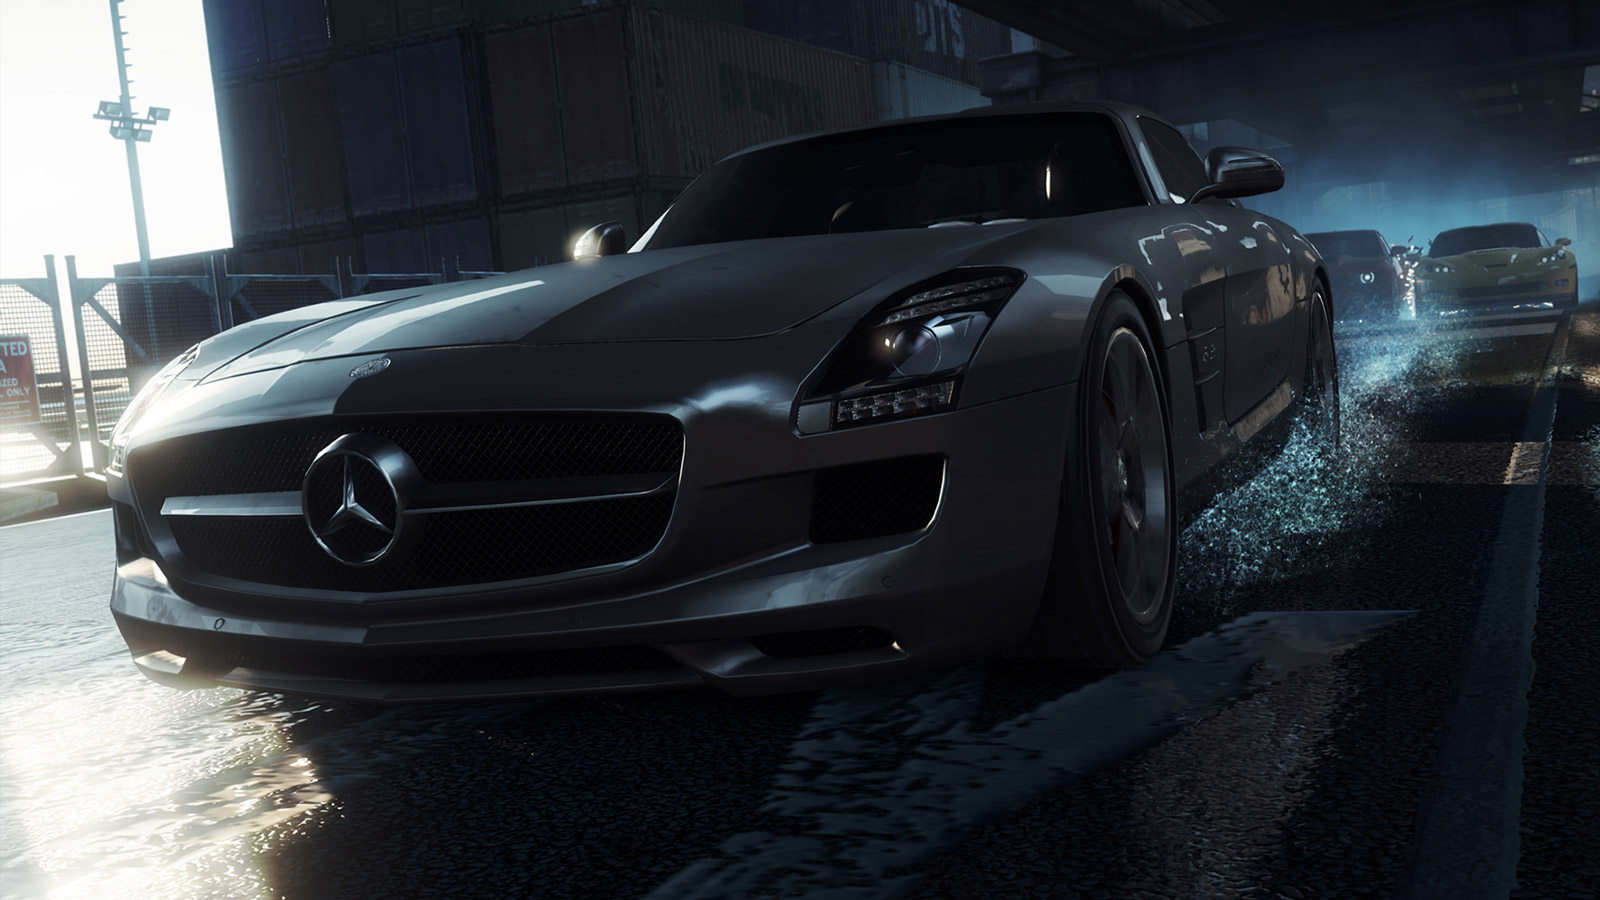 Free Need for Speed: Most Wanted (2012) Wallpaper in 1600x900